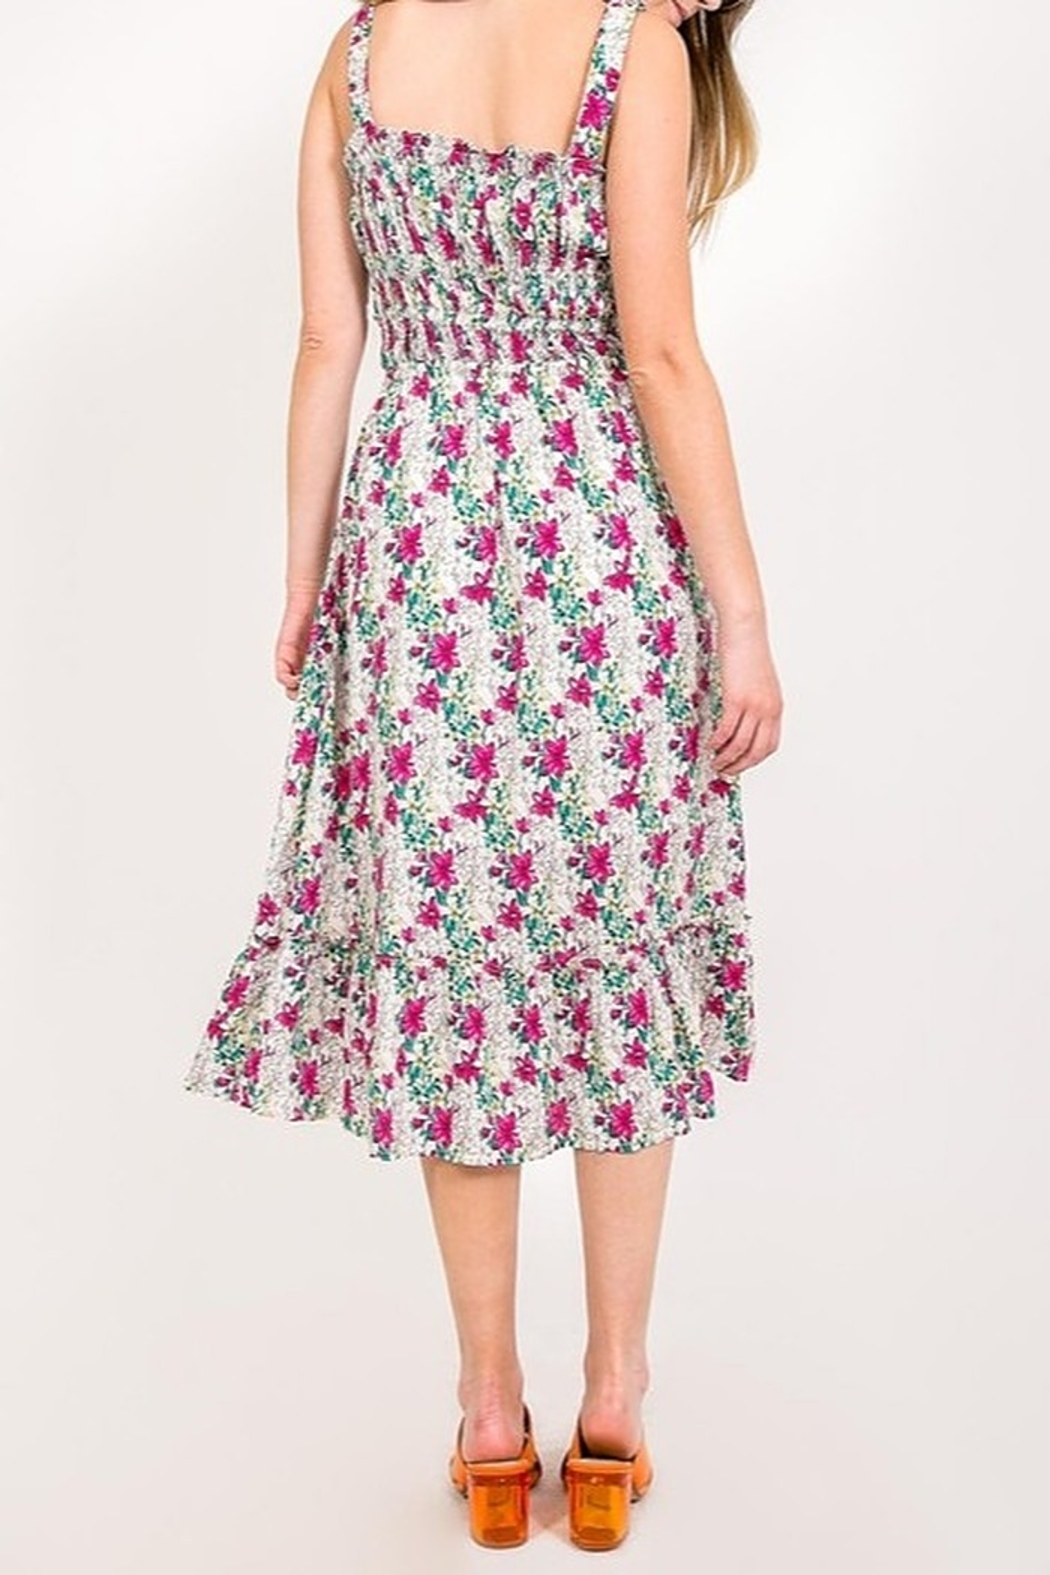 Very J Floral Print Midi Dress - Side Cropped Image